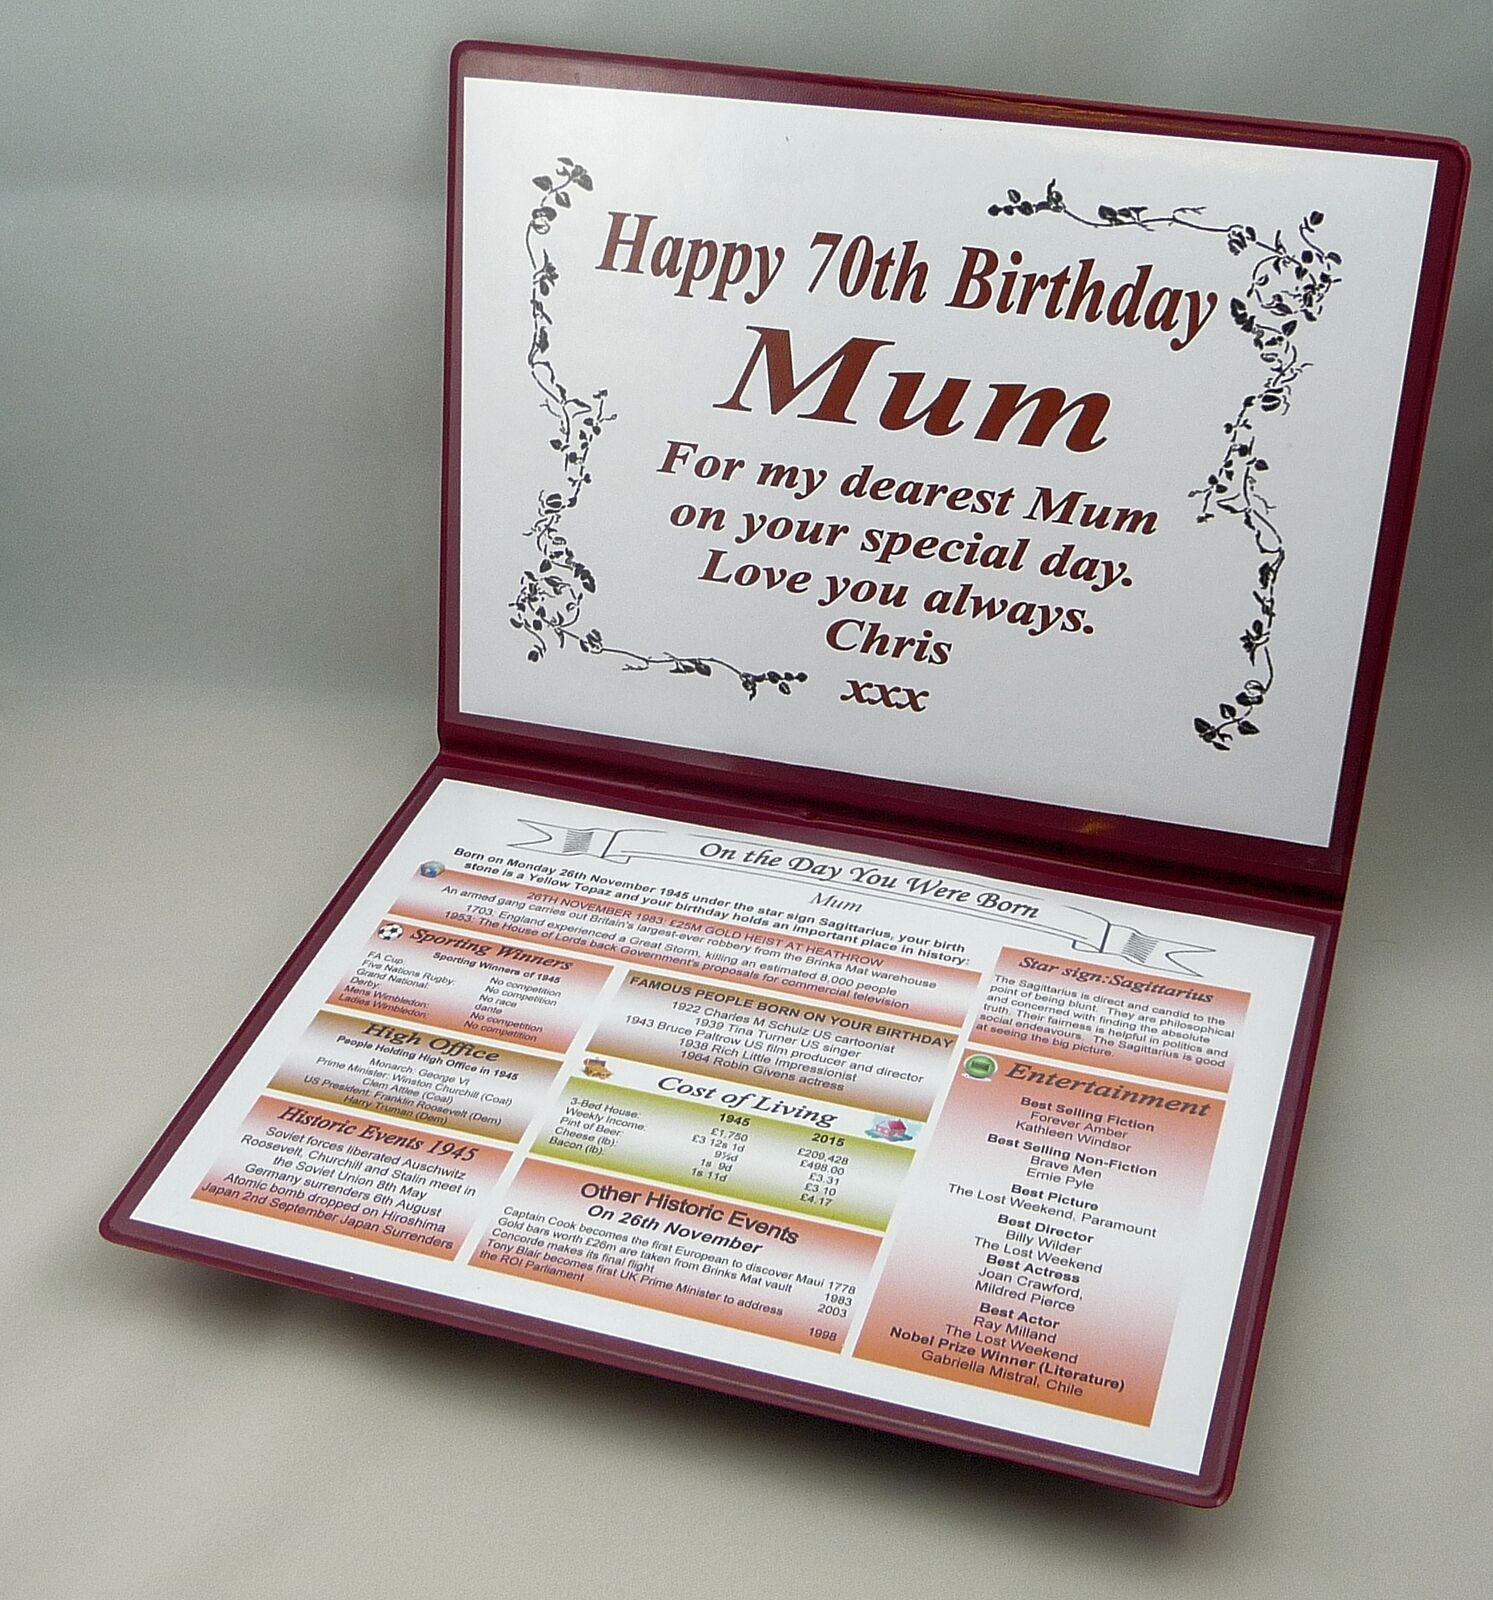 SPECIAL 70TH BIRTHDAY GIFT- THE DAY YOU WERE BORN